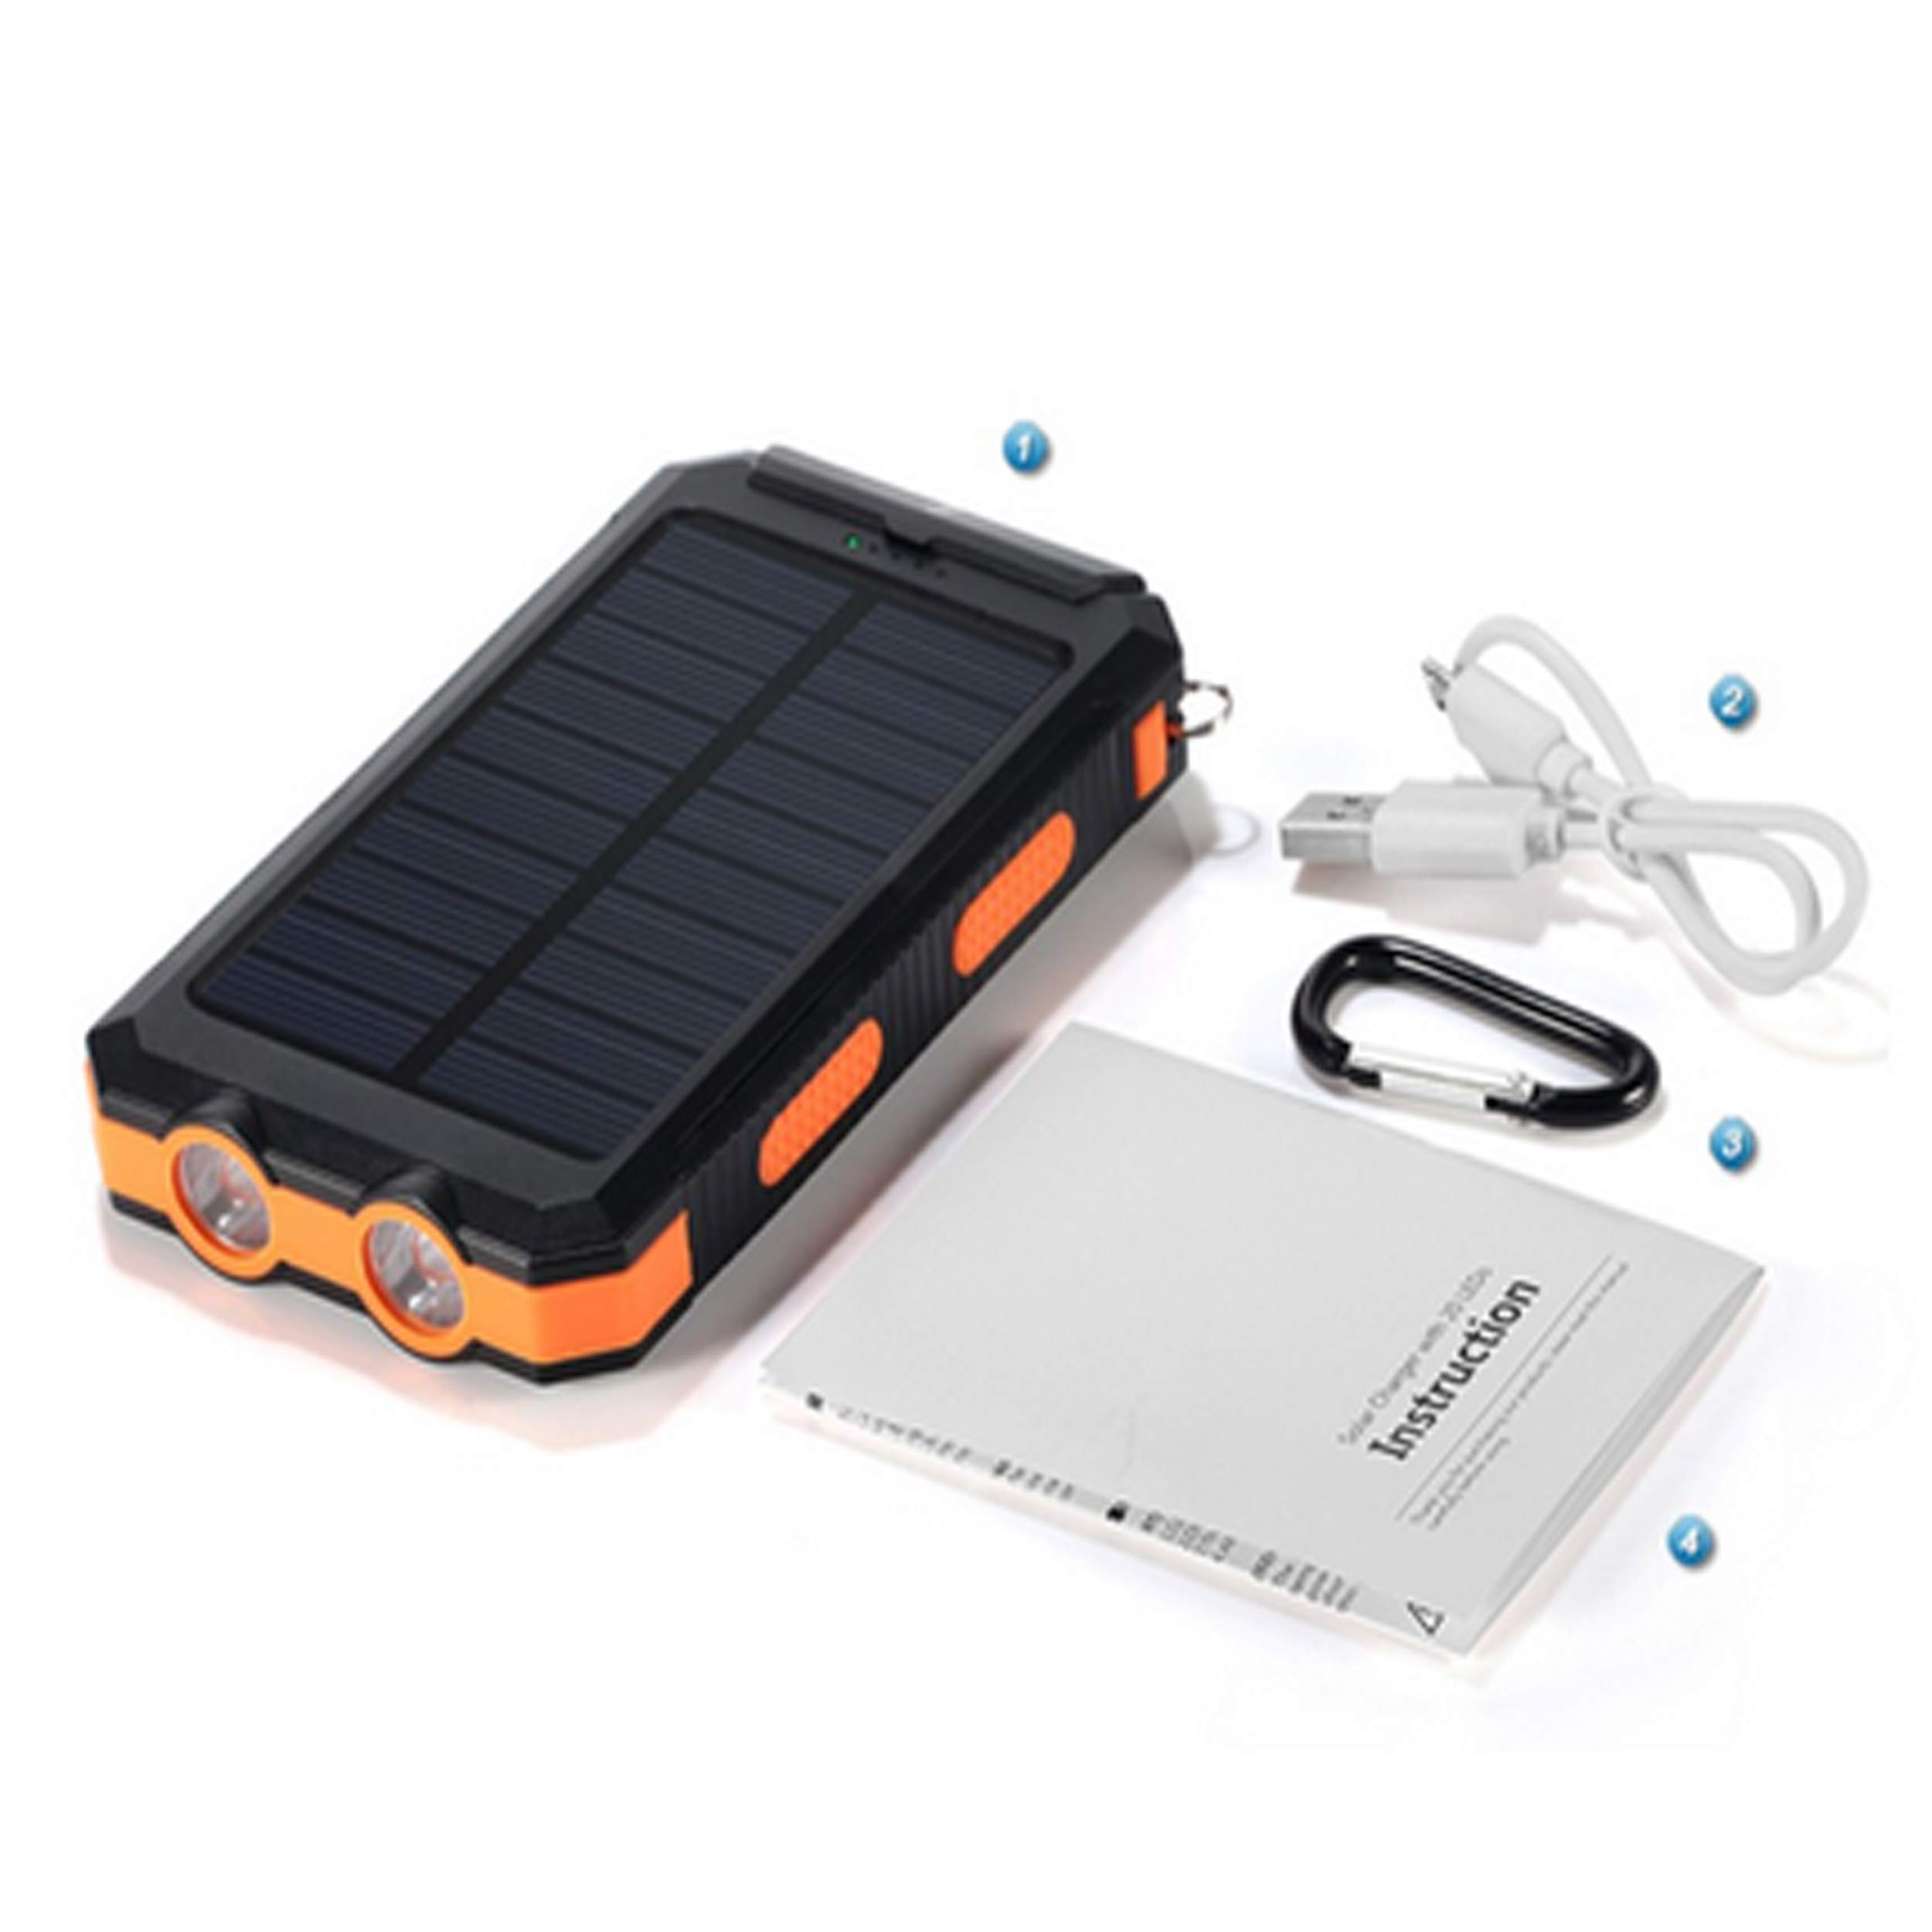 Bysionics Solar Phone Charger,Portable Charger Solar Charger Power Bank 12000mah External Backup Battery Pack Dual USB with 2LED Light Carabiner and Compass for Your Smartphones and More (Orange) by Bysionics (Image #5)